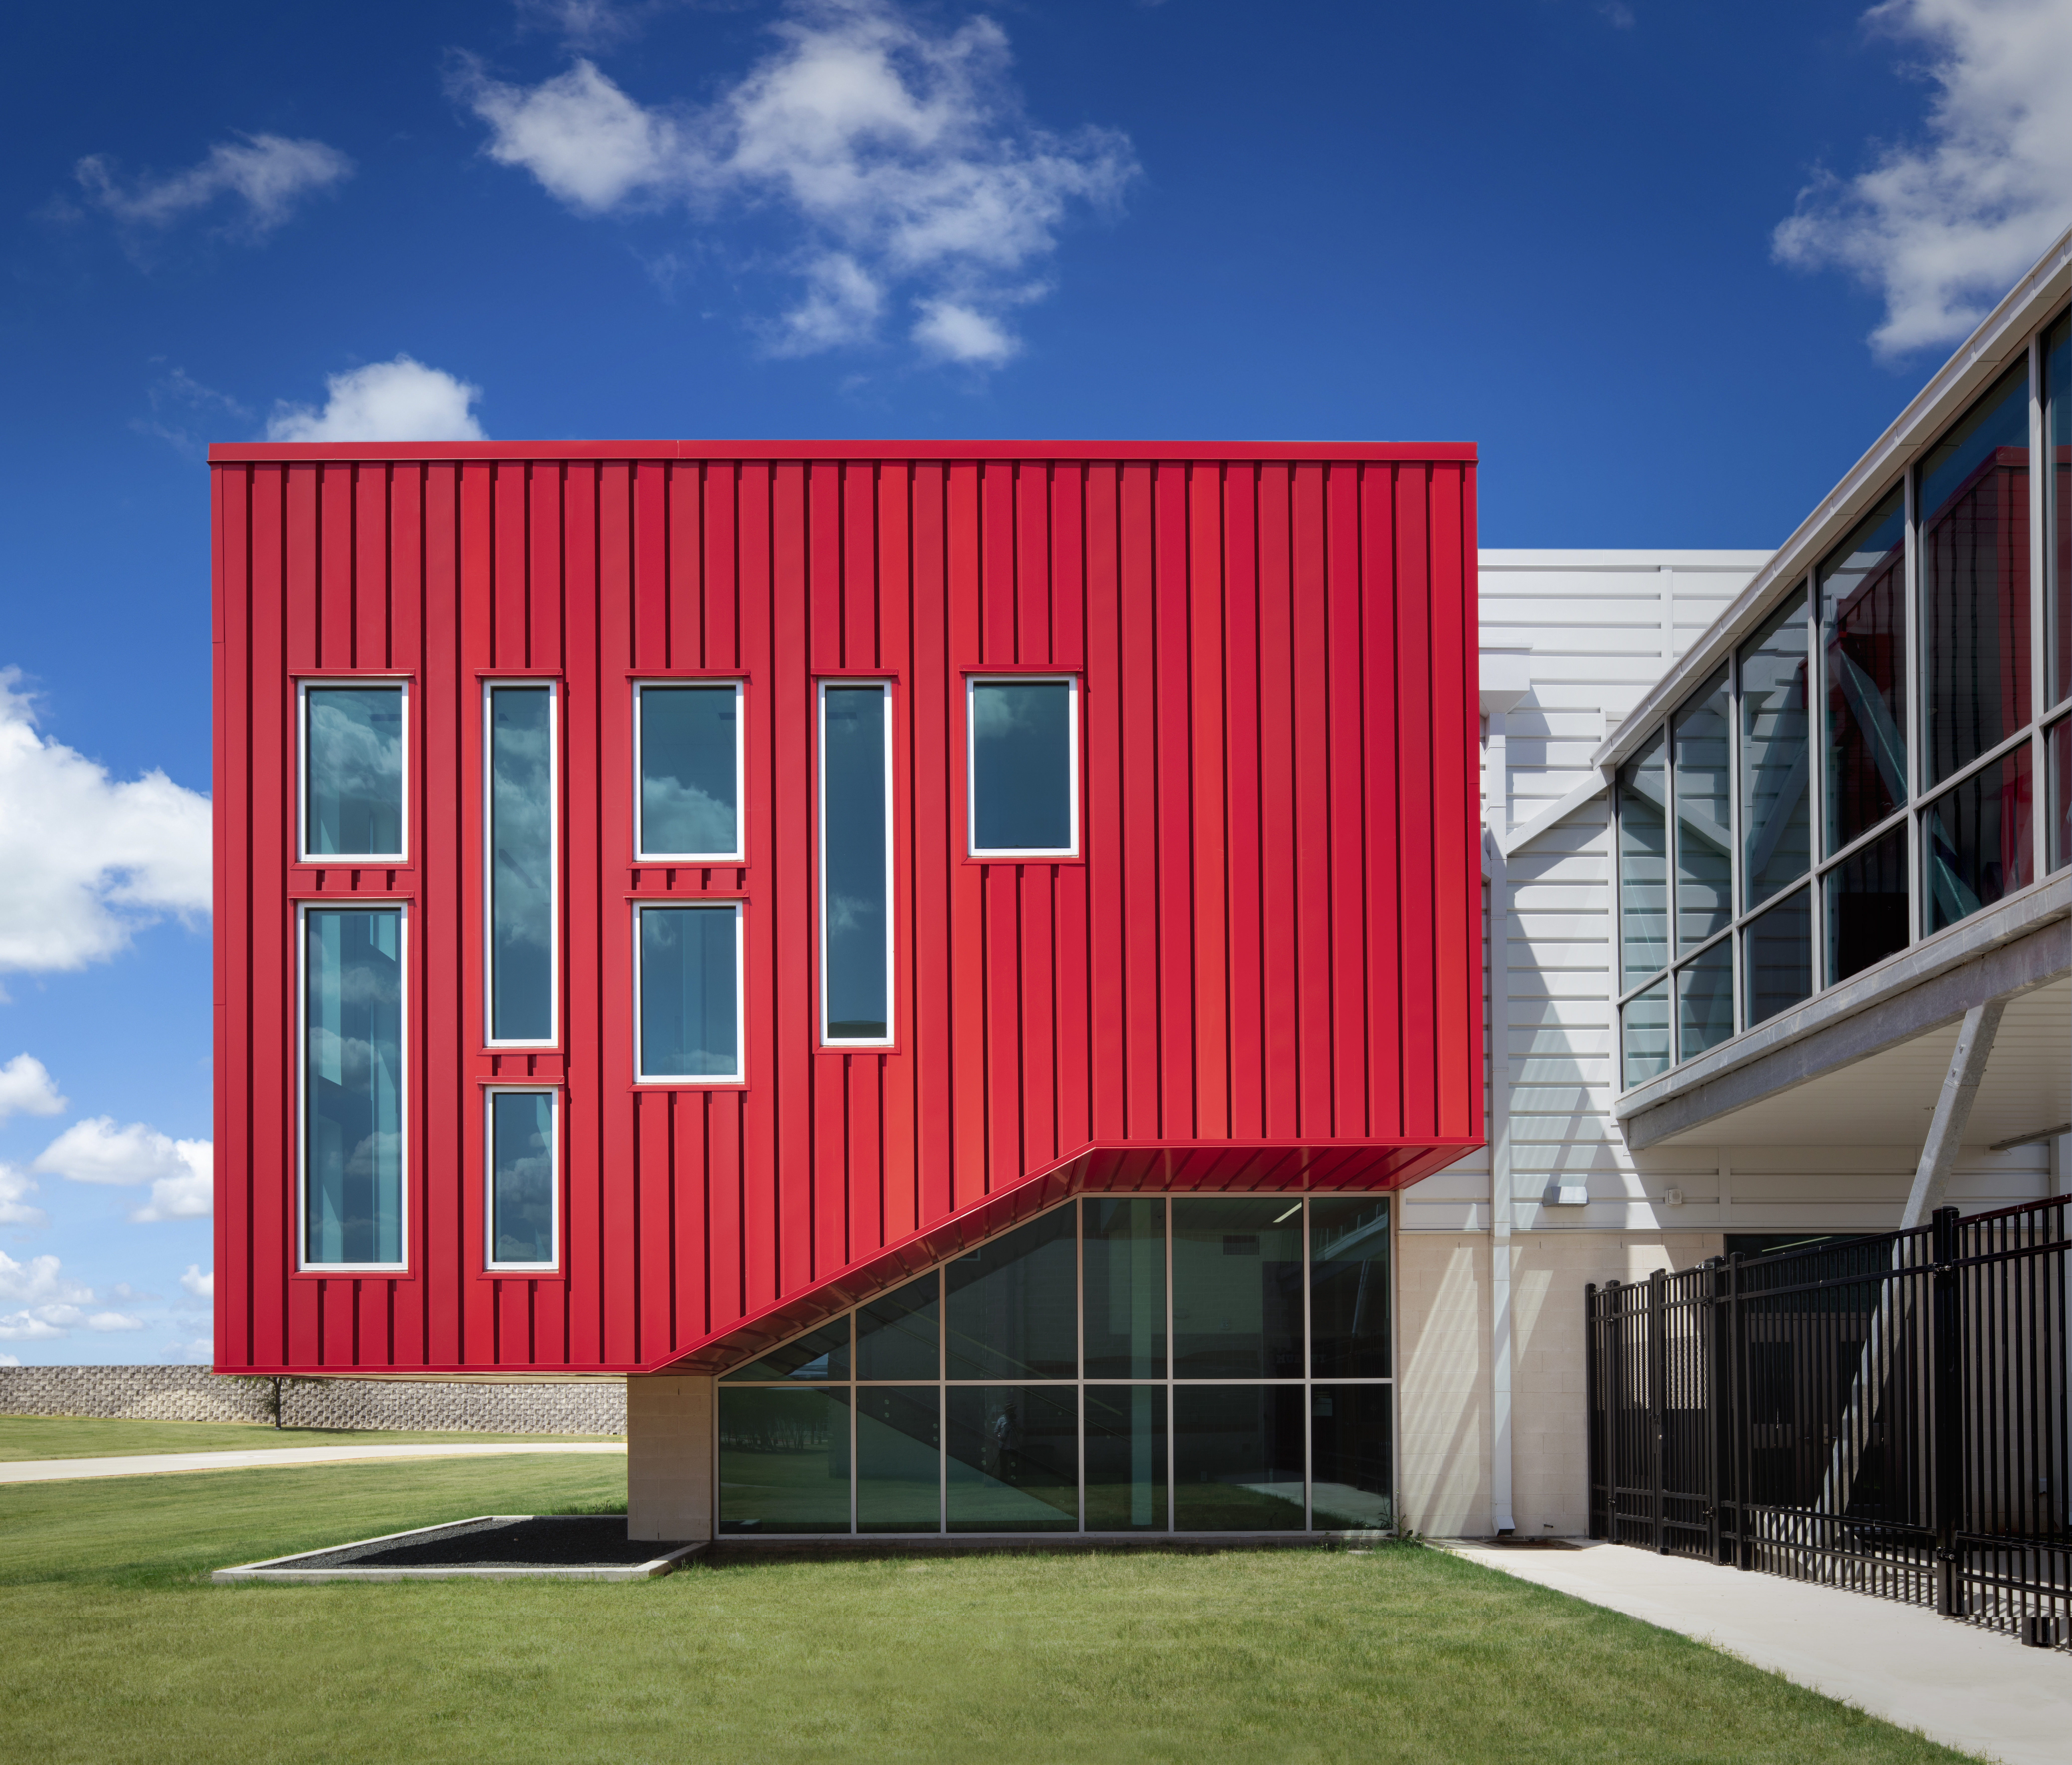 Tite-Loc Plus Metal Roofing Highline S-1 Metal Wall Panels Del Valle HS